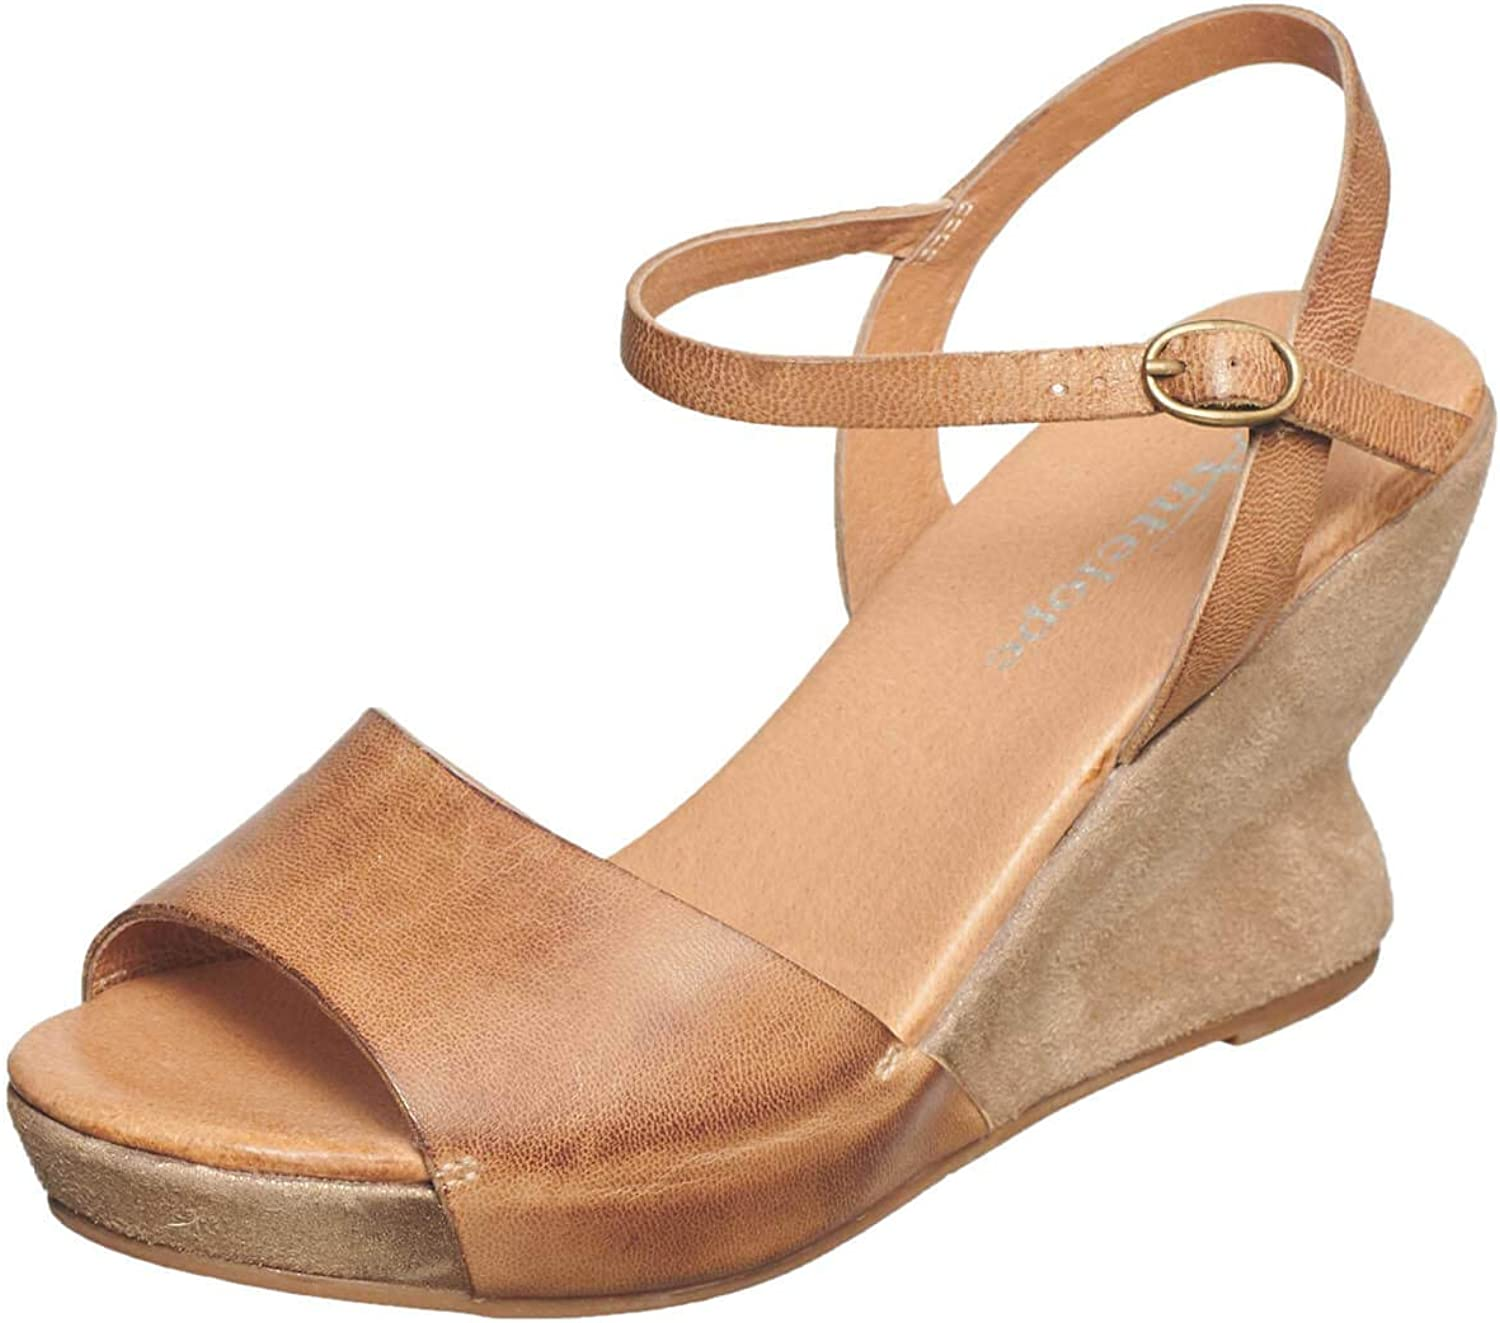 Antelope Women's 690 Leather Hourglass Wedge Quarter Strap